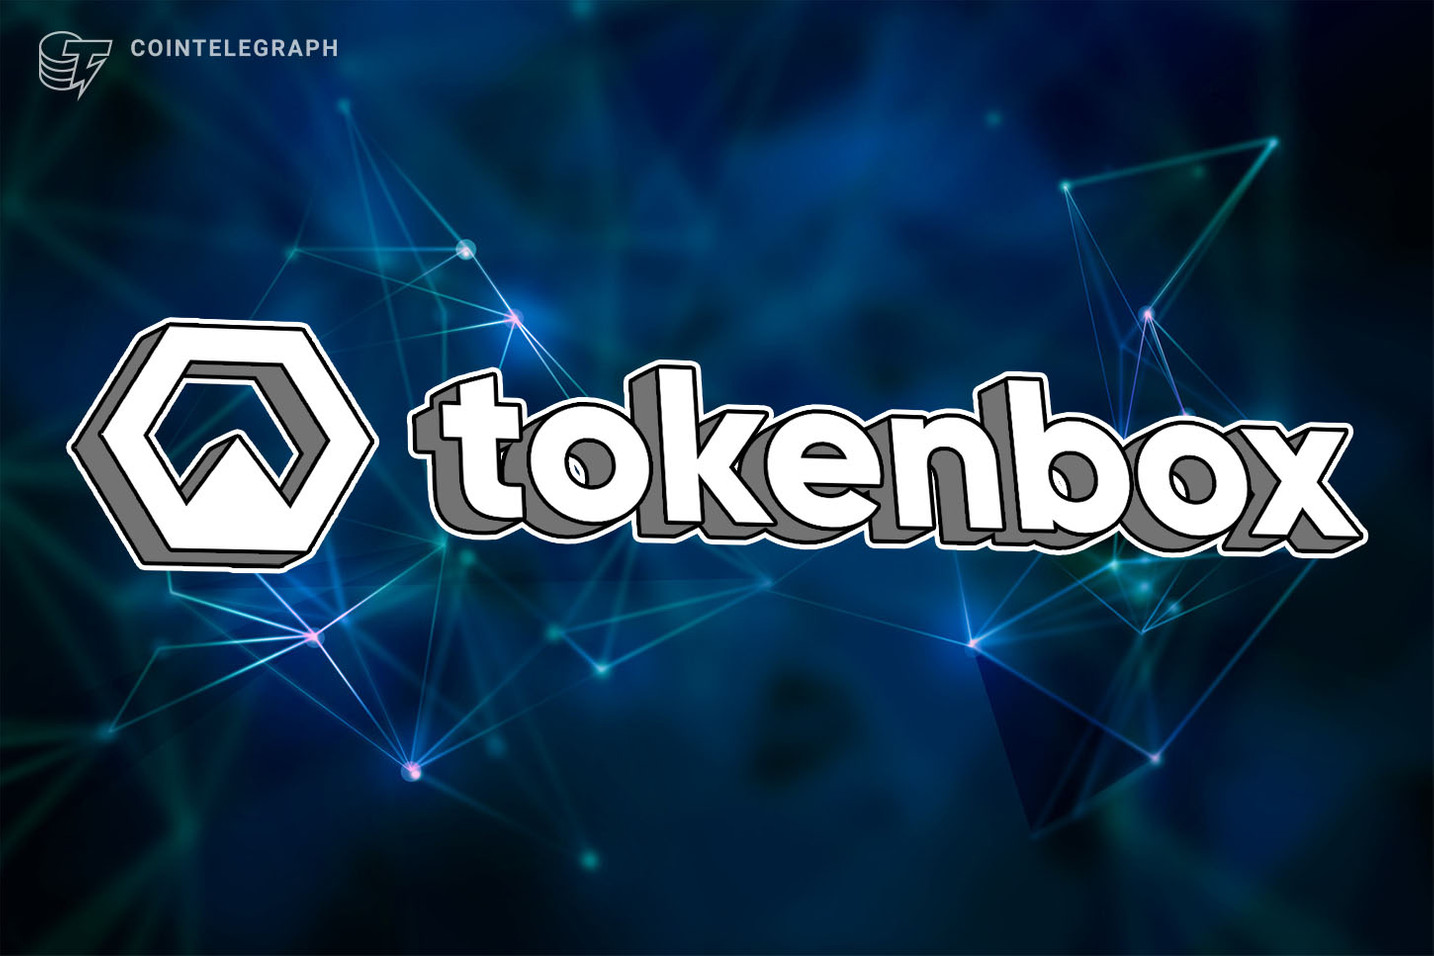 Tokenbox Platform Launches Trading Contest and Gives Away 1 Million TBX